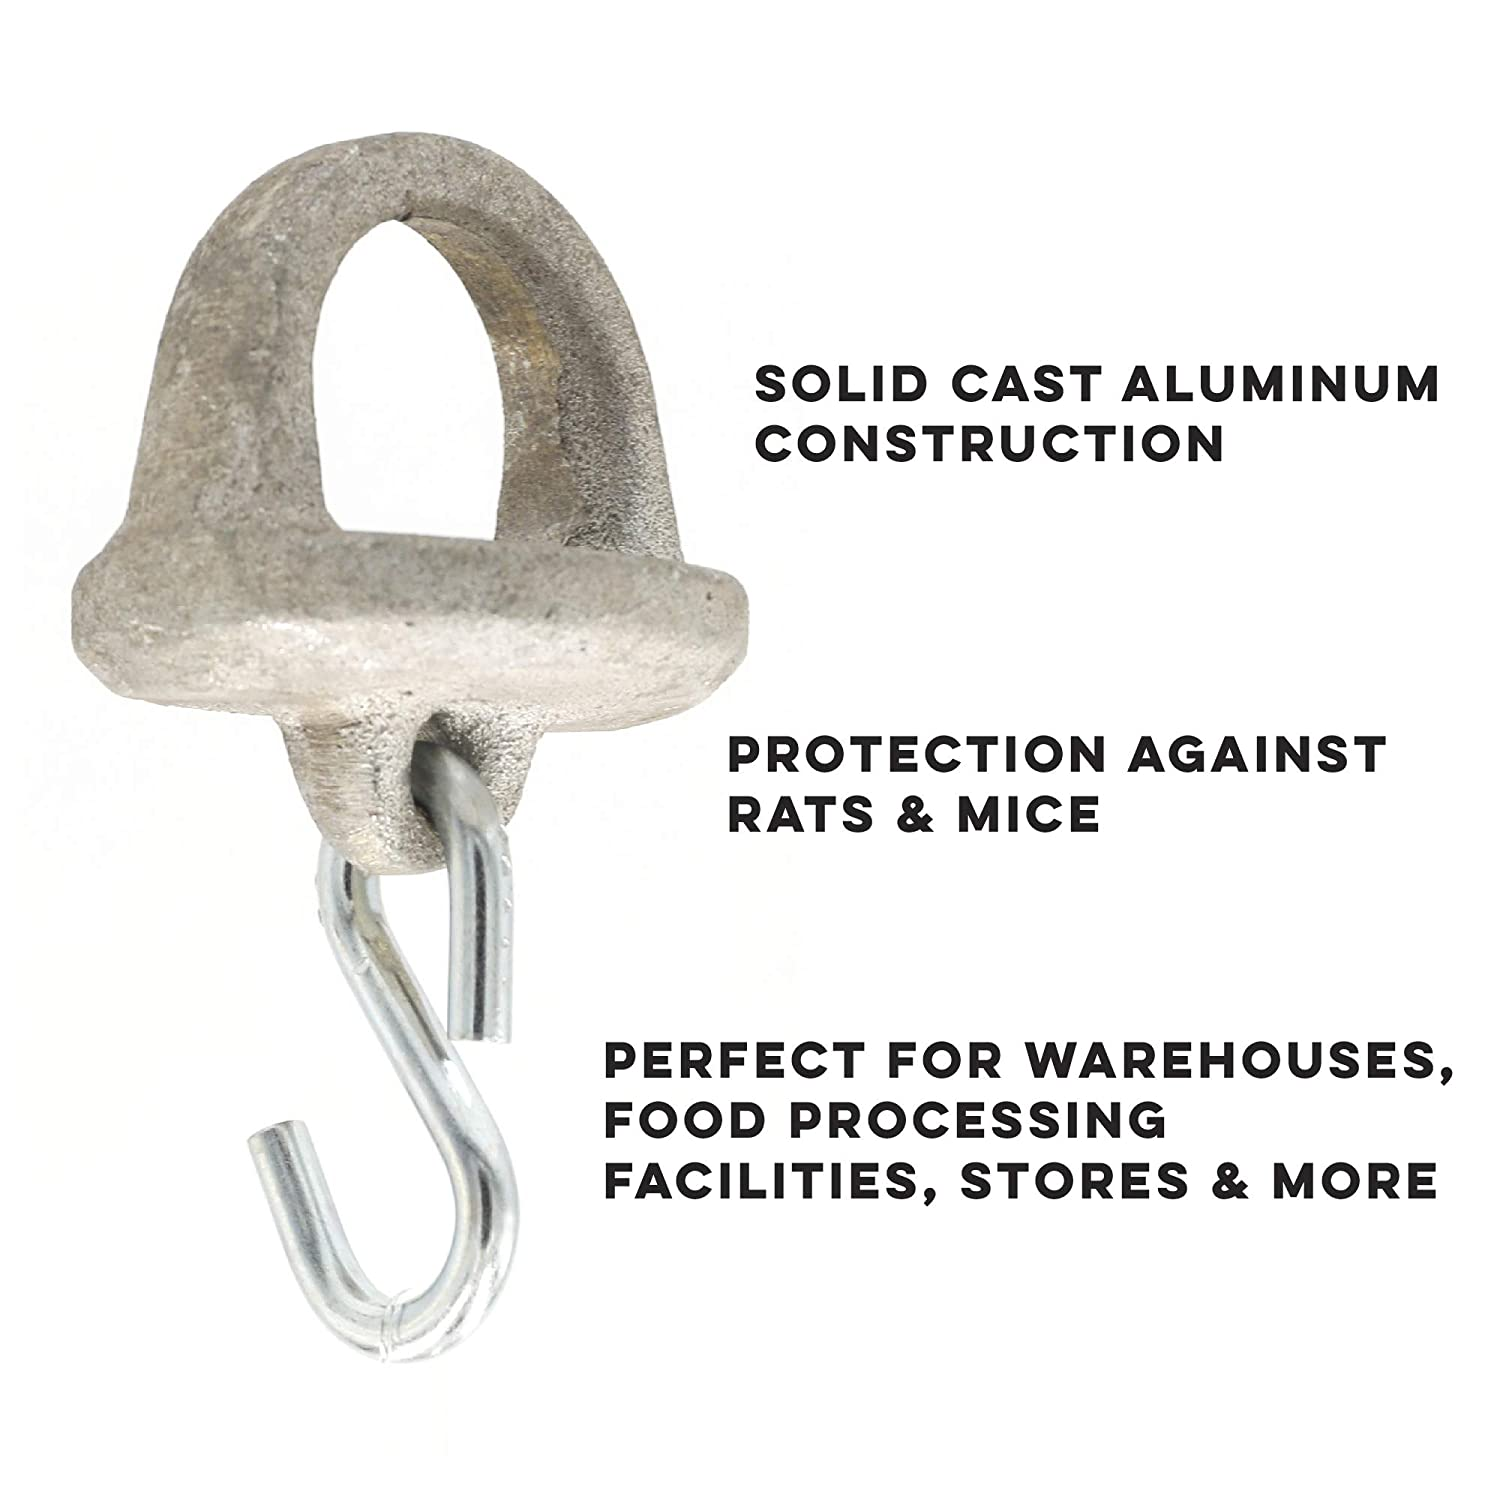 Xcluder Pull Chain Seal for Dock Levelers; 1.75in Seal Stops Rodents